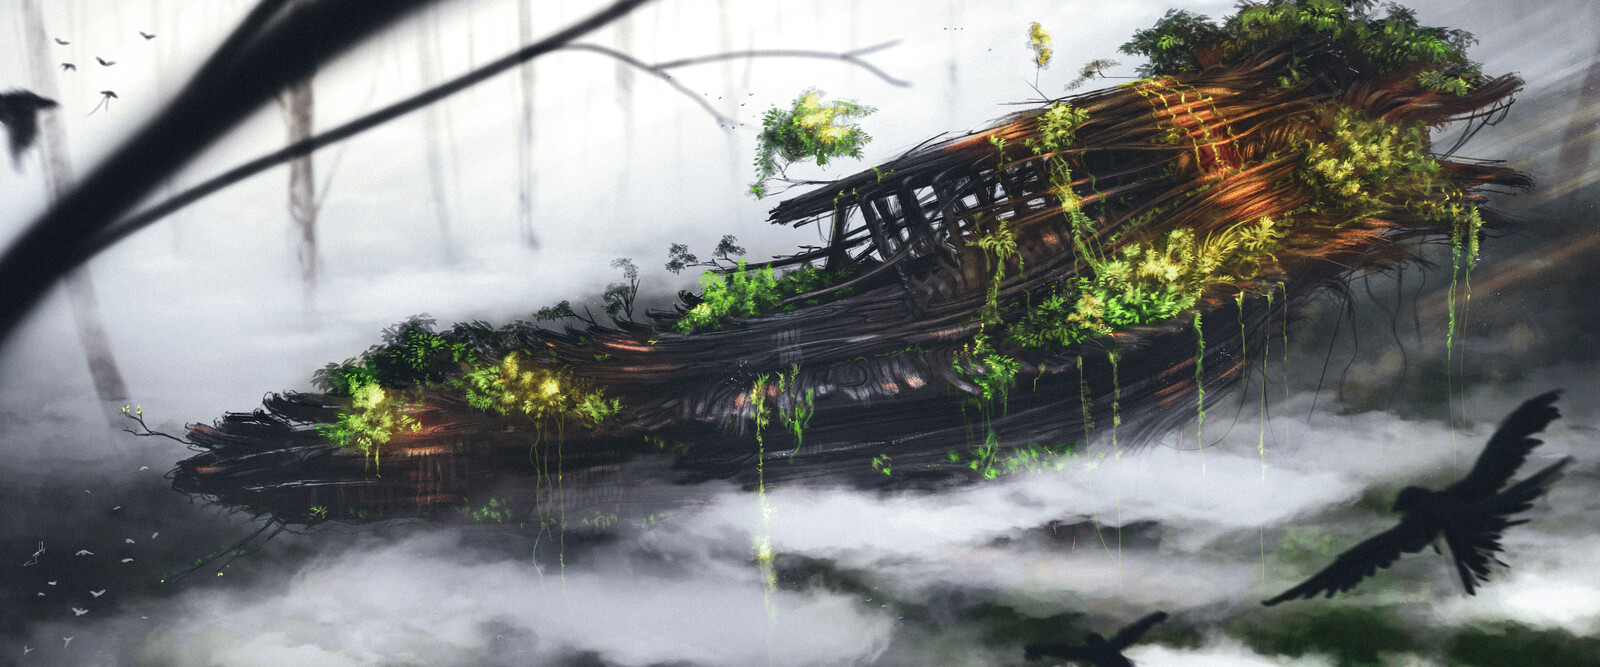 Forest ship